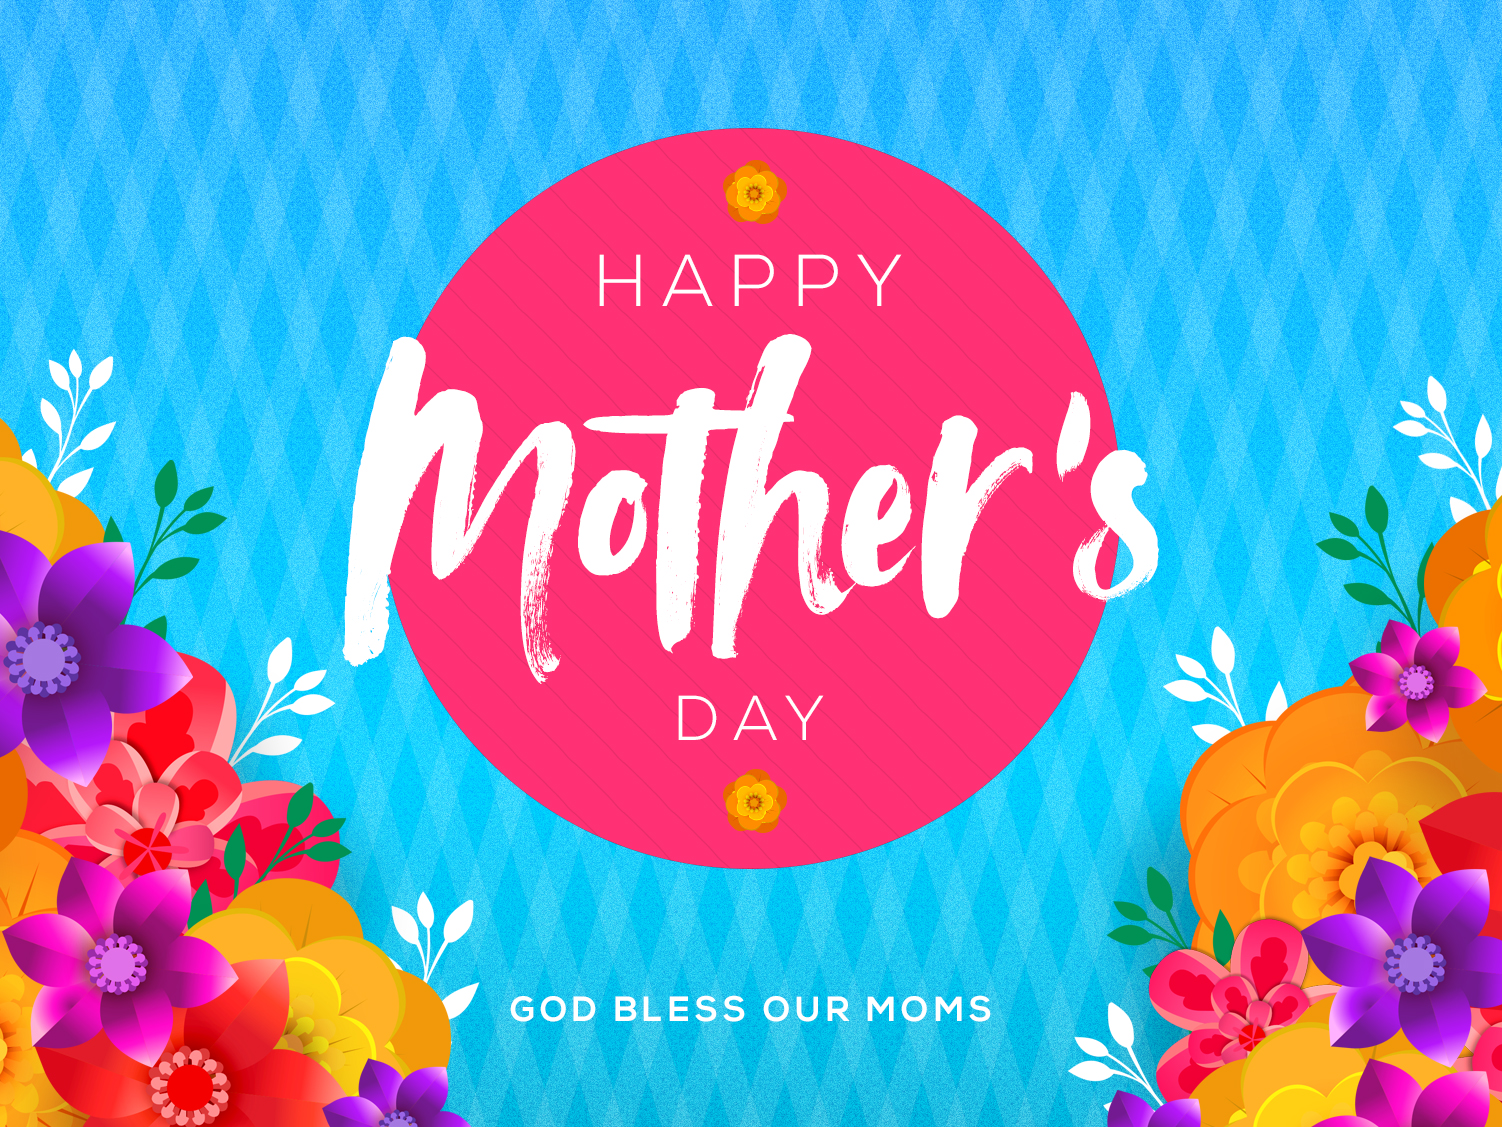 Weekly Invite – 12 May 2019: Happy Mother's Day